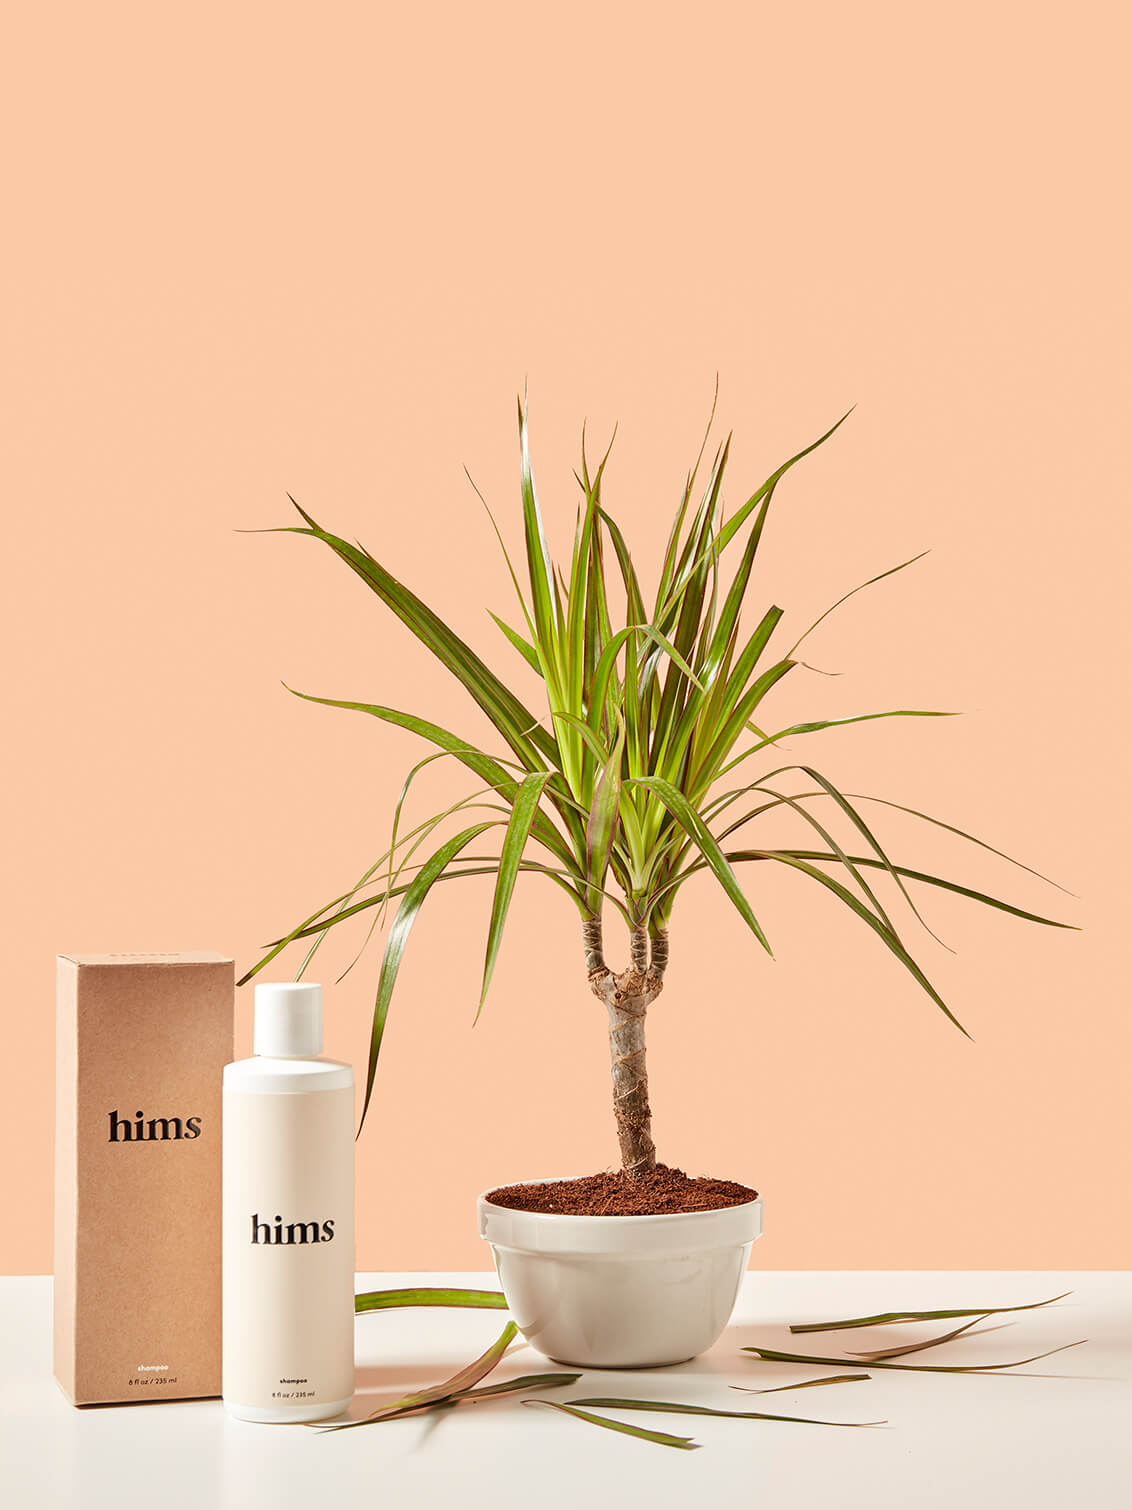 A plant with leaves falling off beside Hims products